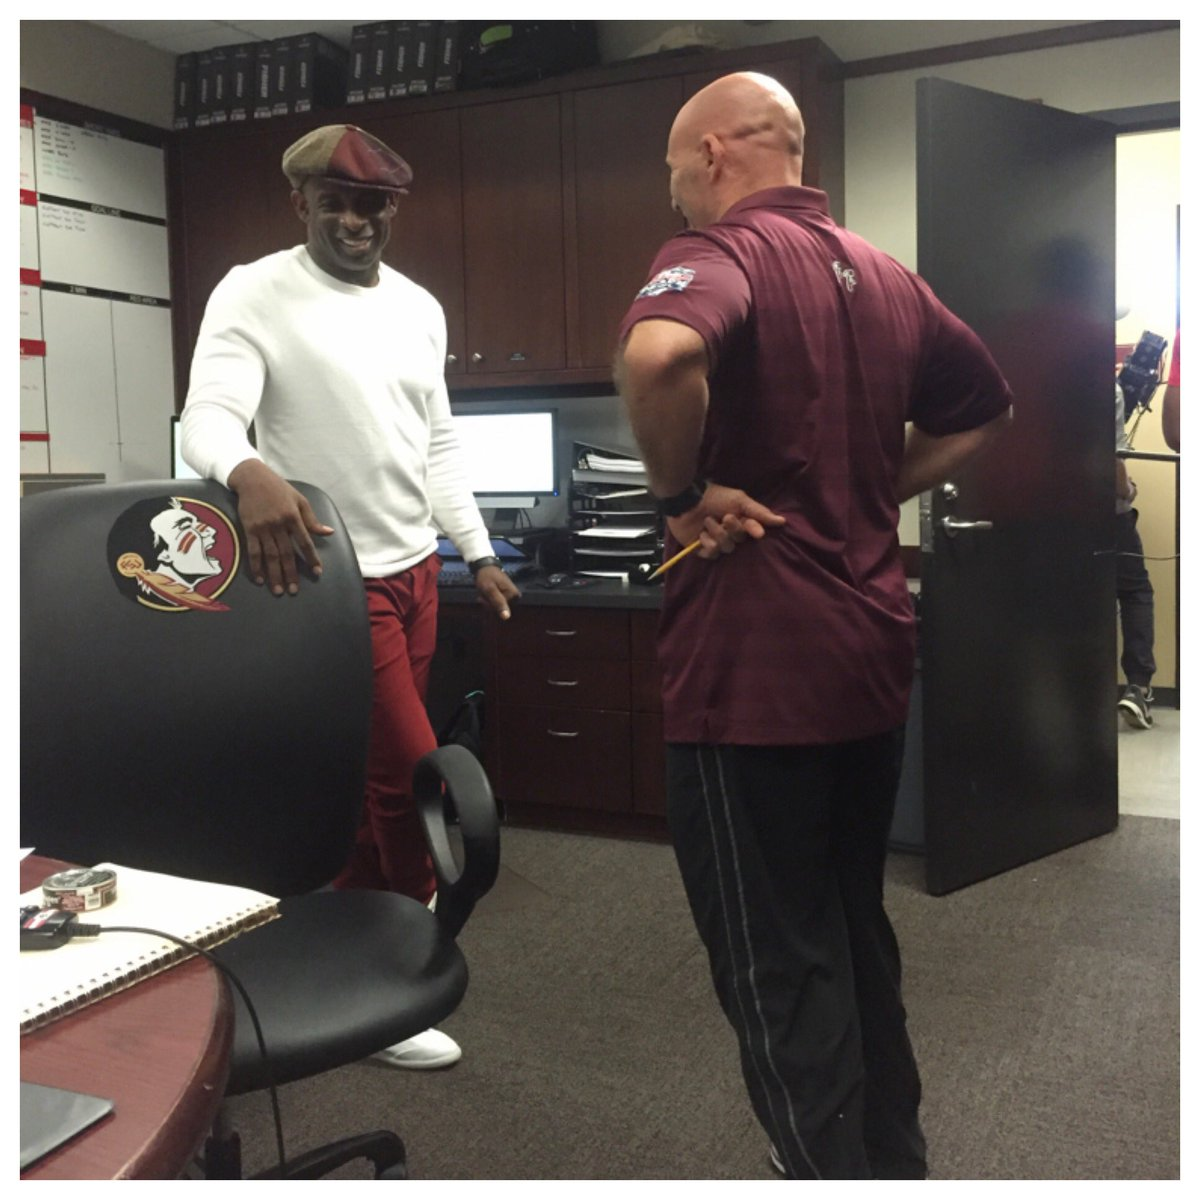 The GOAT is in the building @DeionSanders talking it up with Coach Kelly. Easy to see who the real #DBU is. #Noles https://t.co/xoALUd0MaA